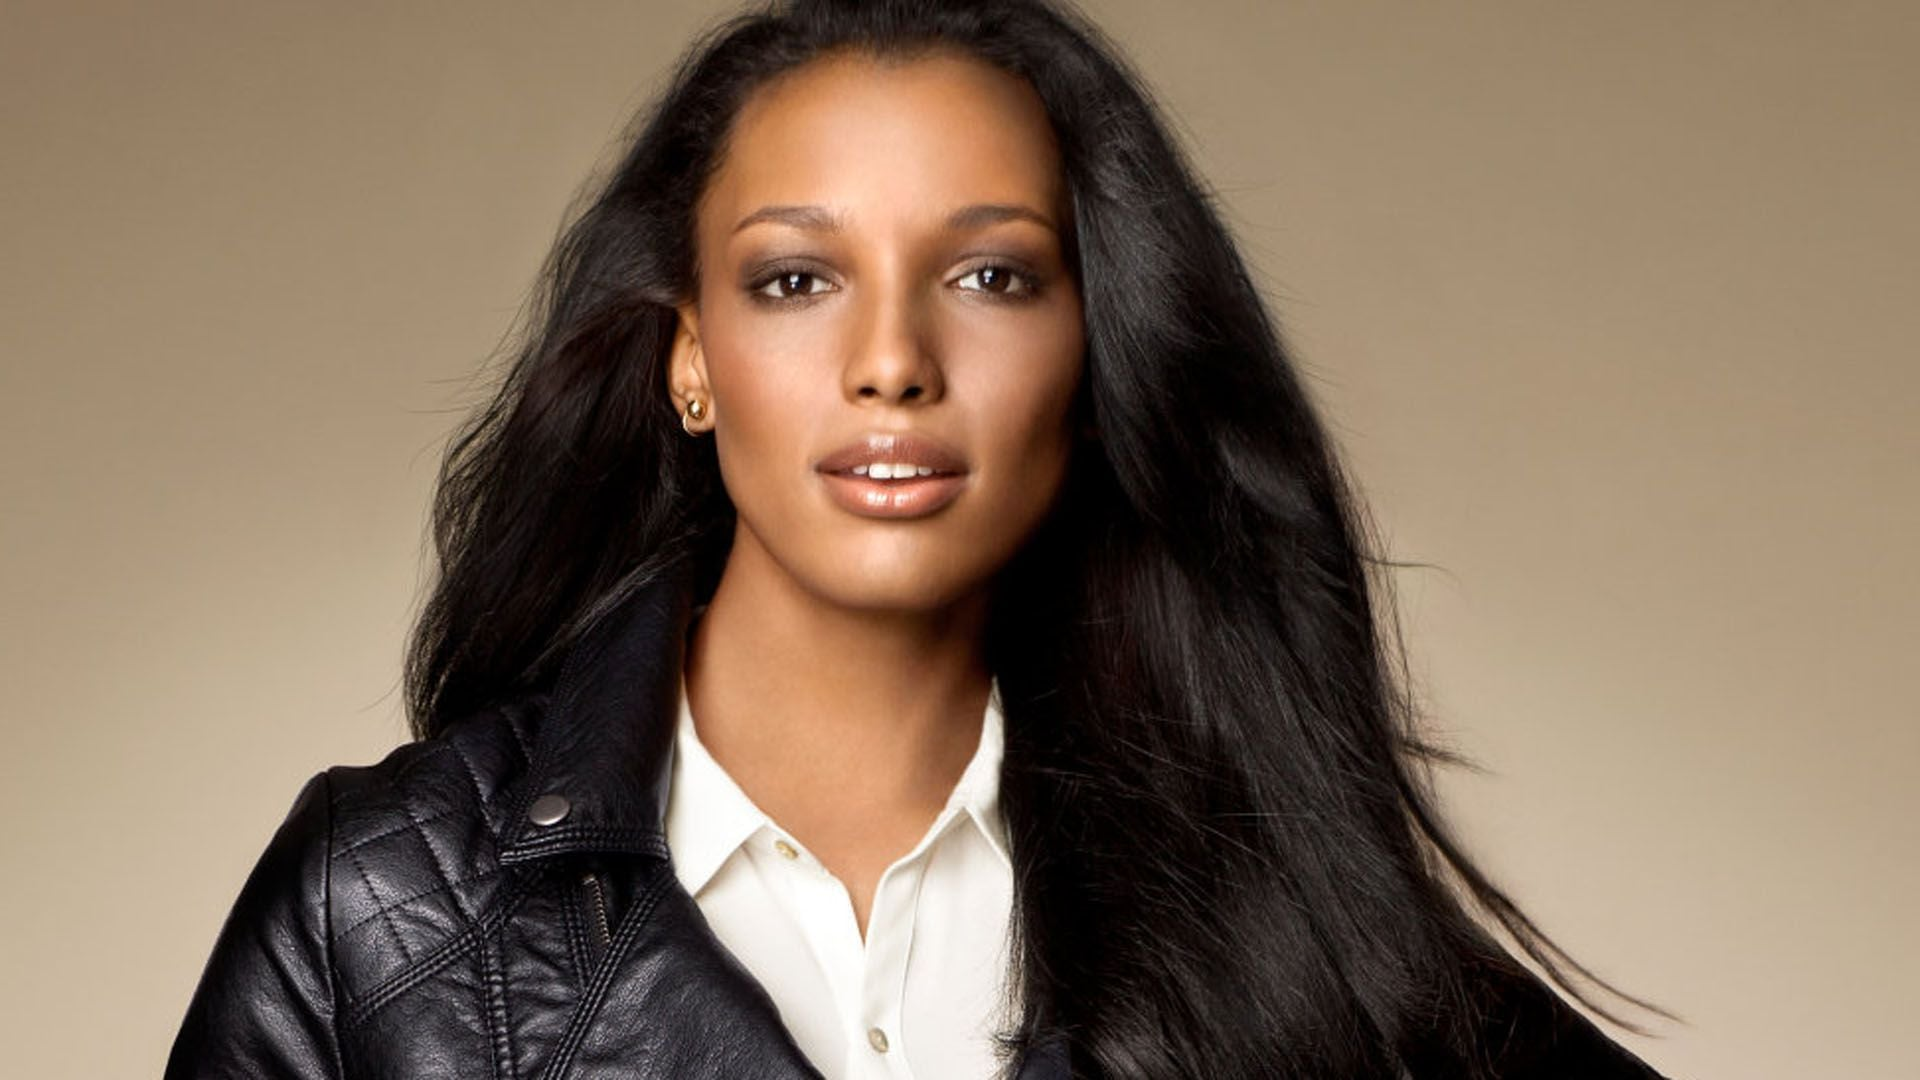 Jasmine Tookes Hd Wallpapers Of High Quality Download